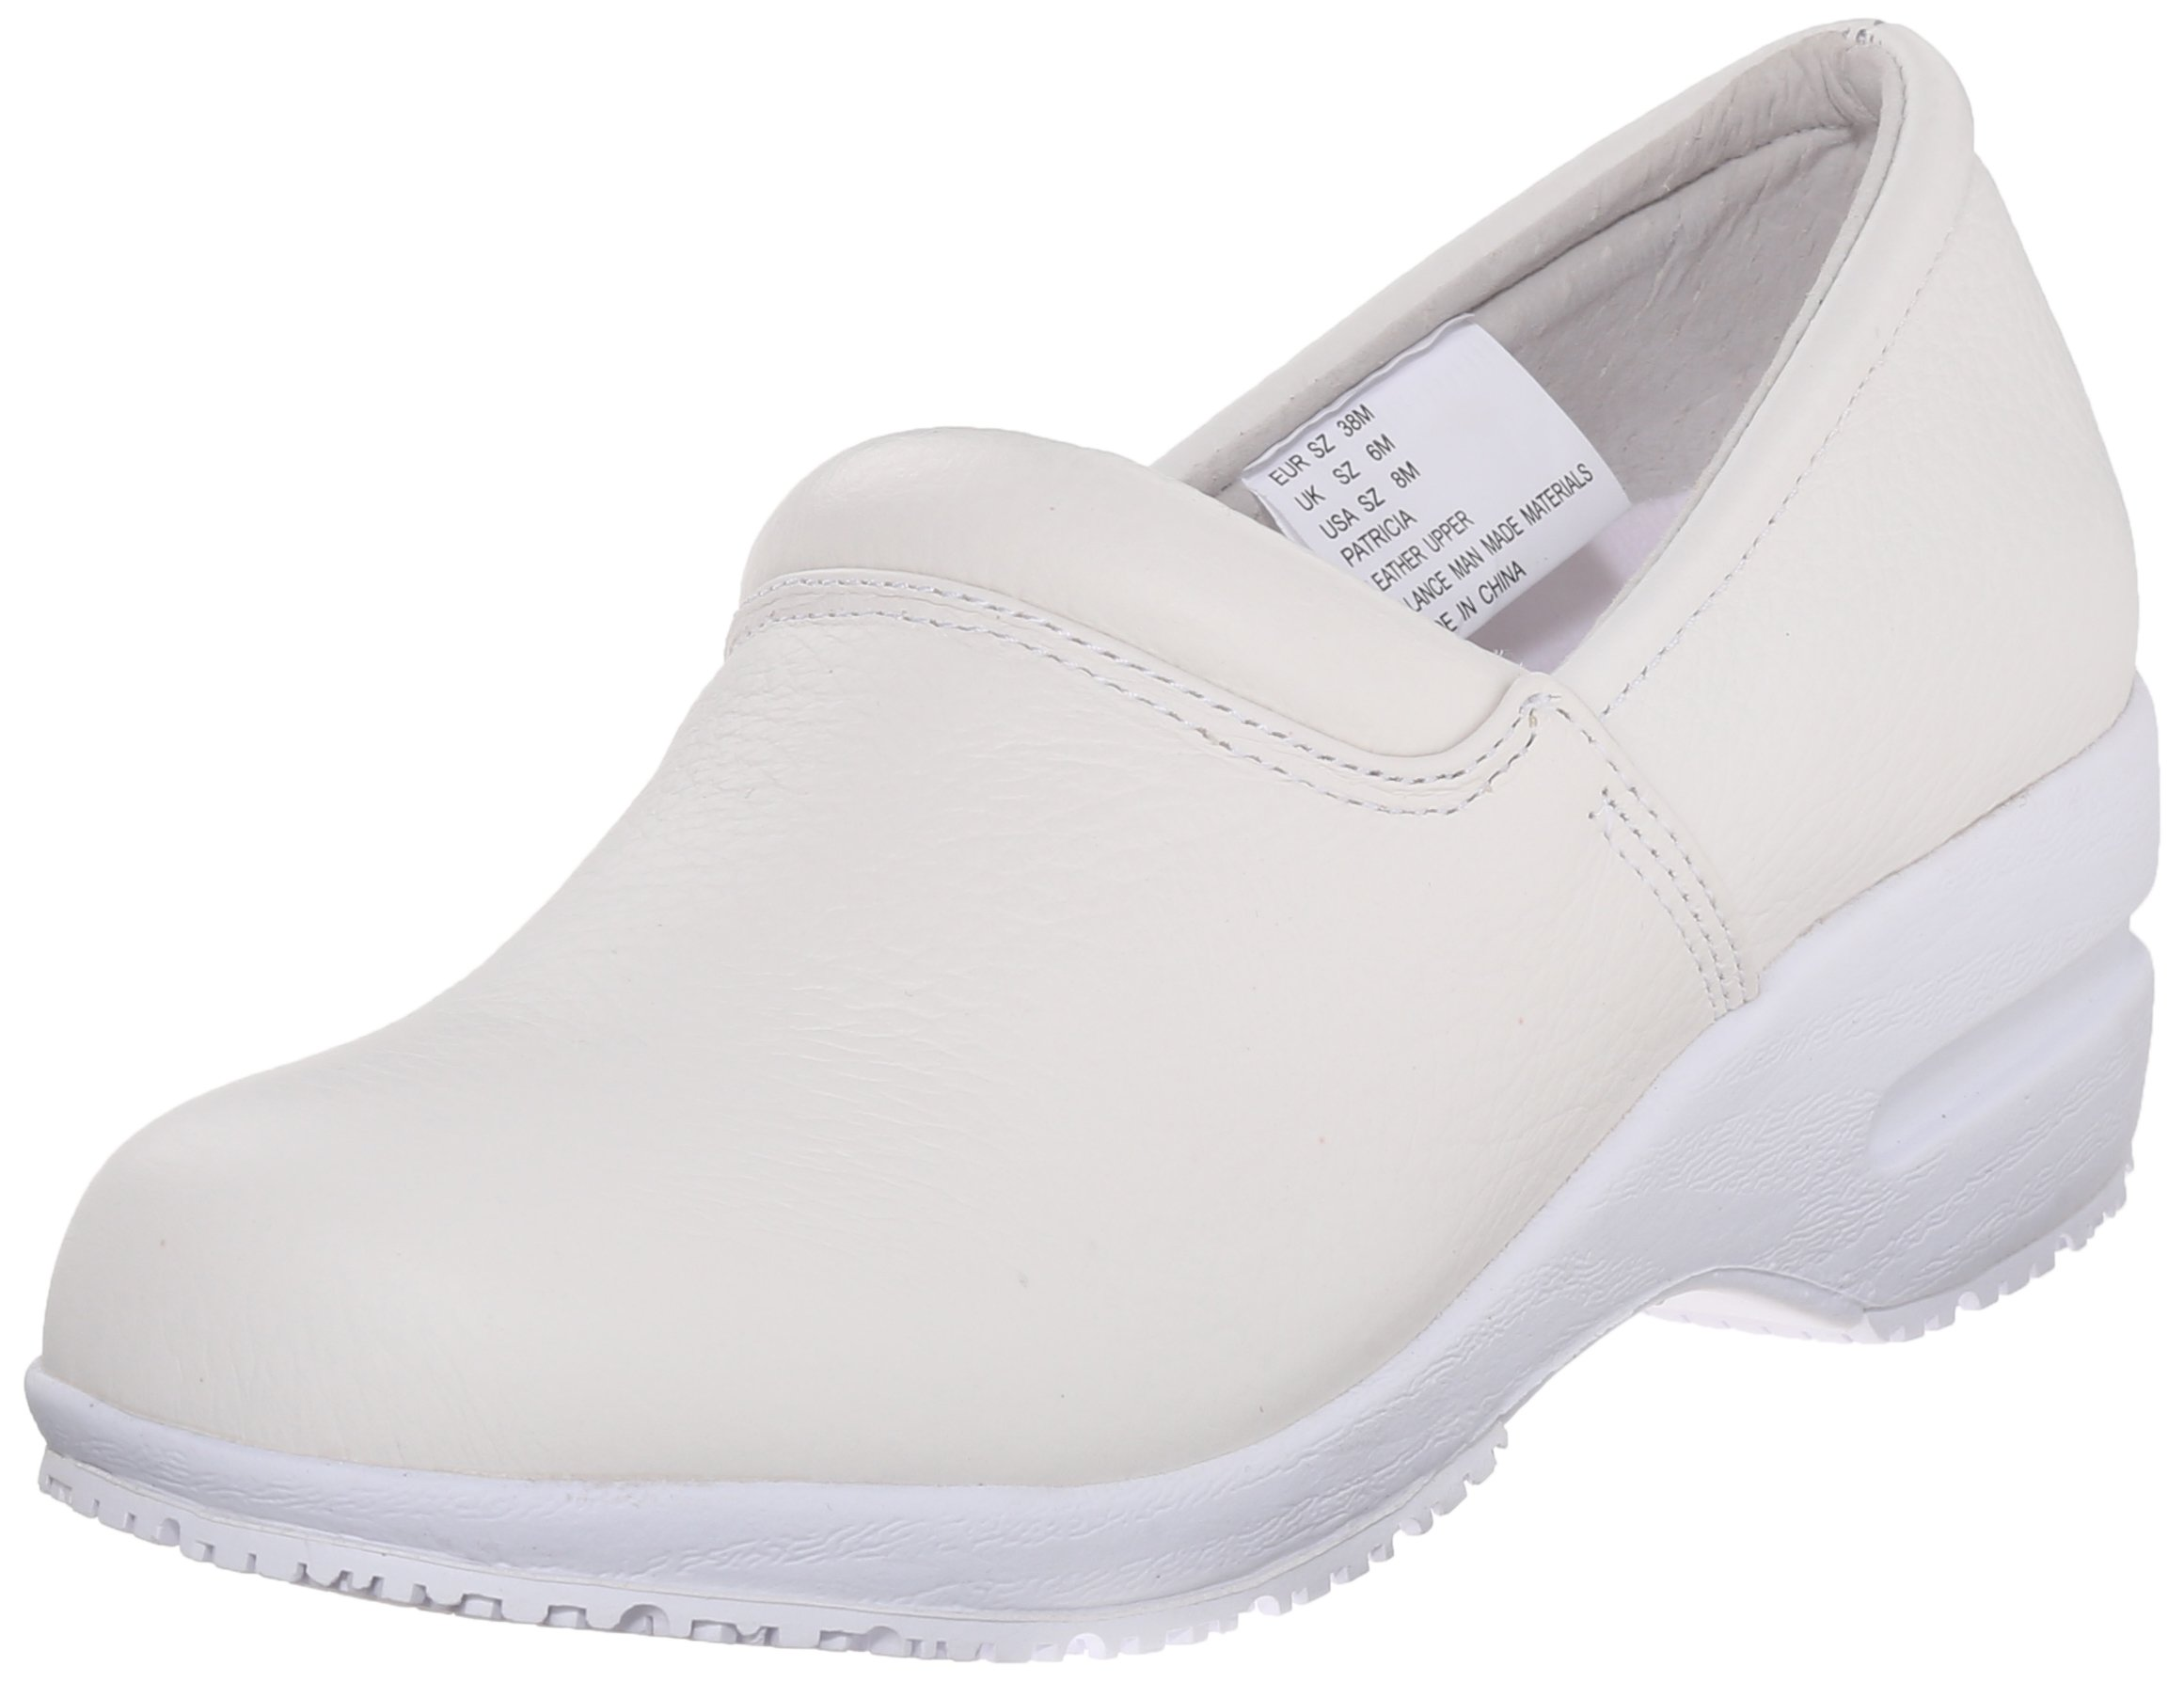 Cherokee Women's Patricia Work Shoe, White, 8 M US by Cherokee (Image #1)